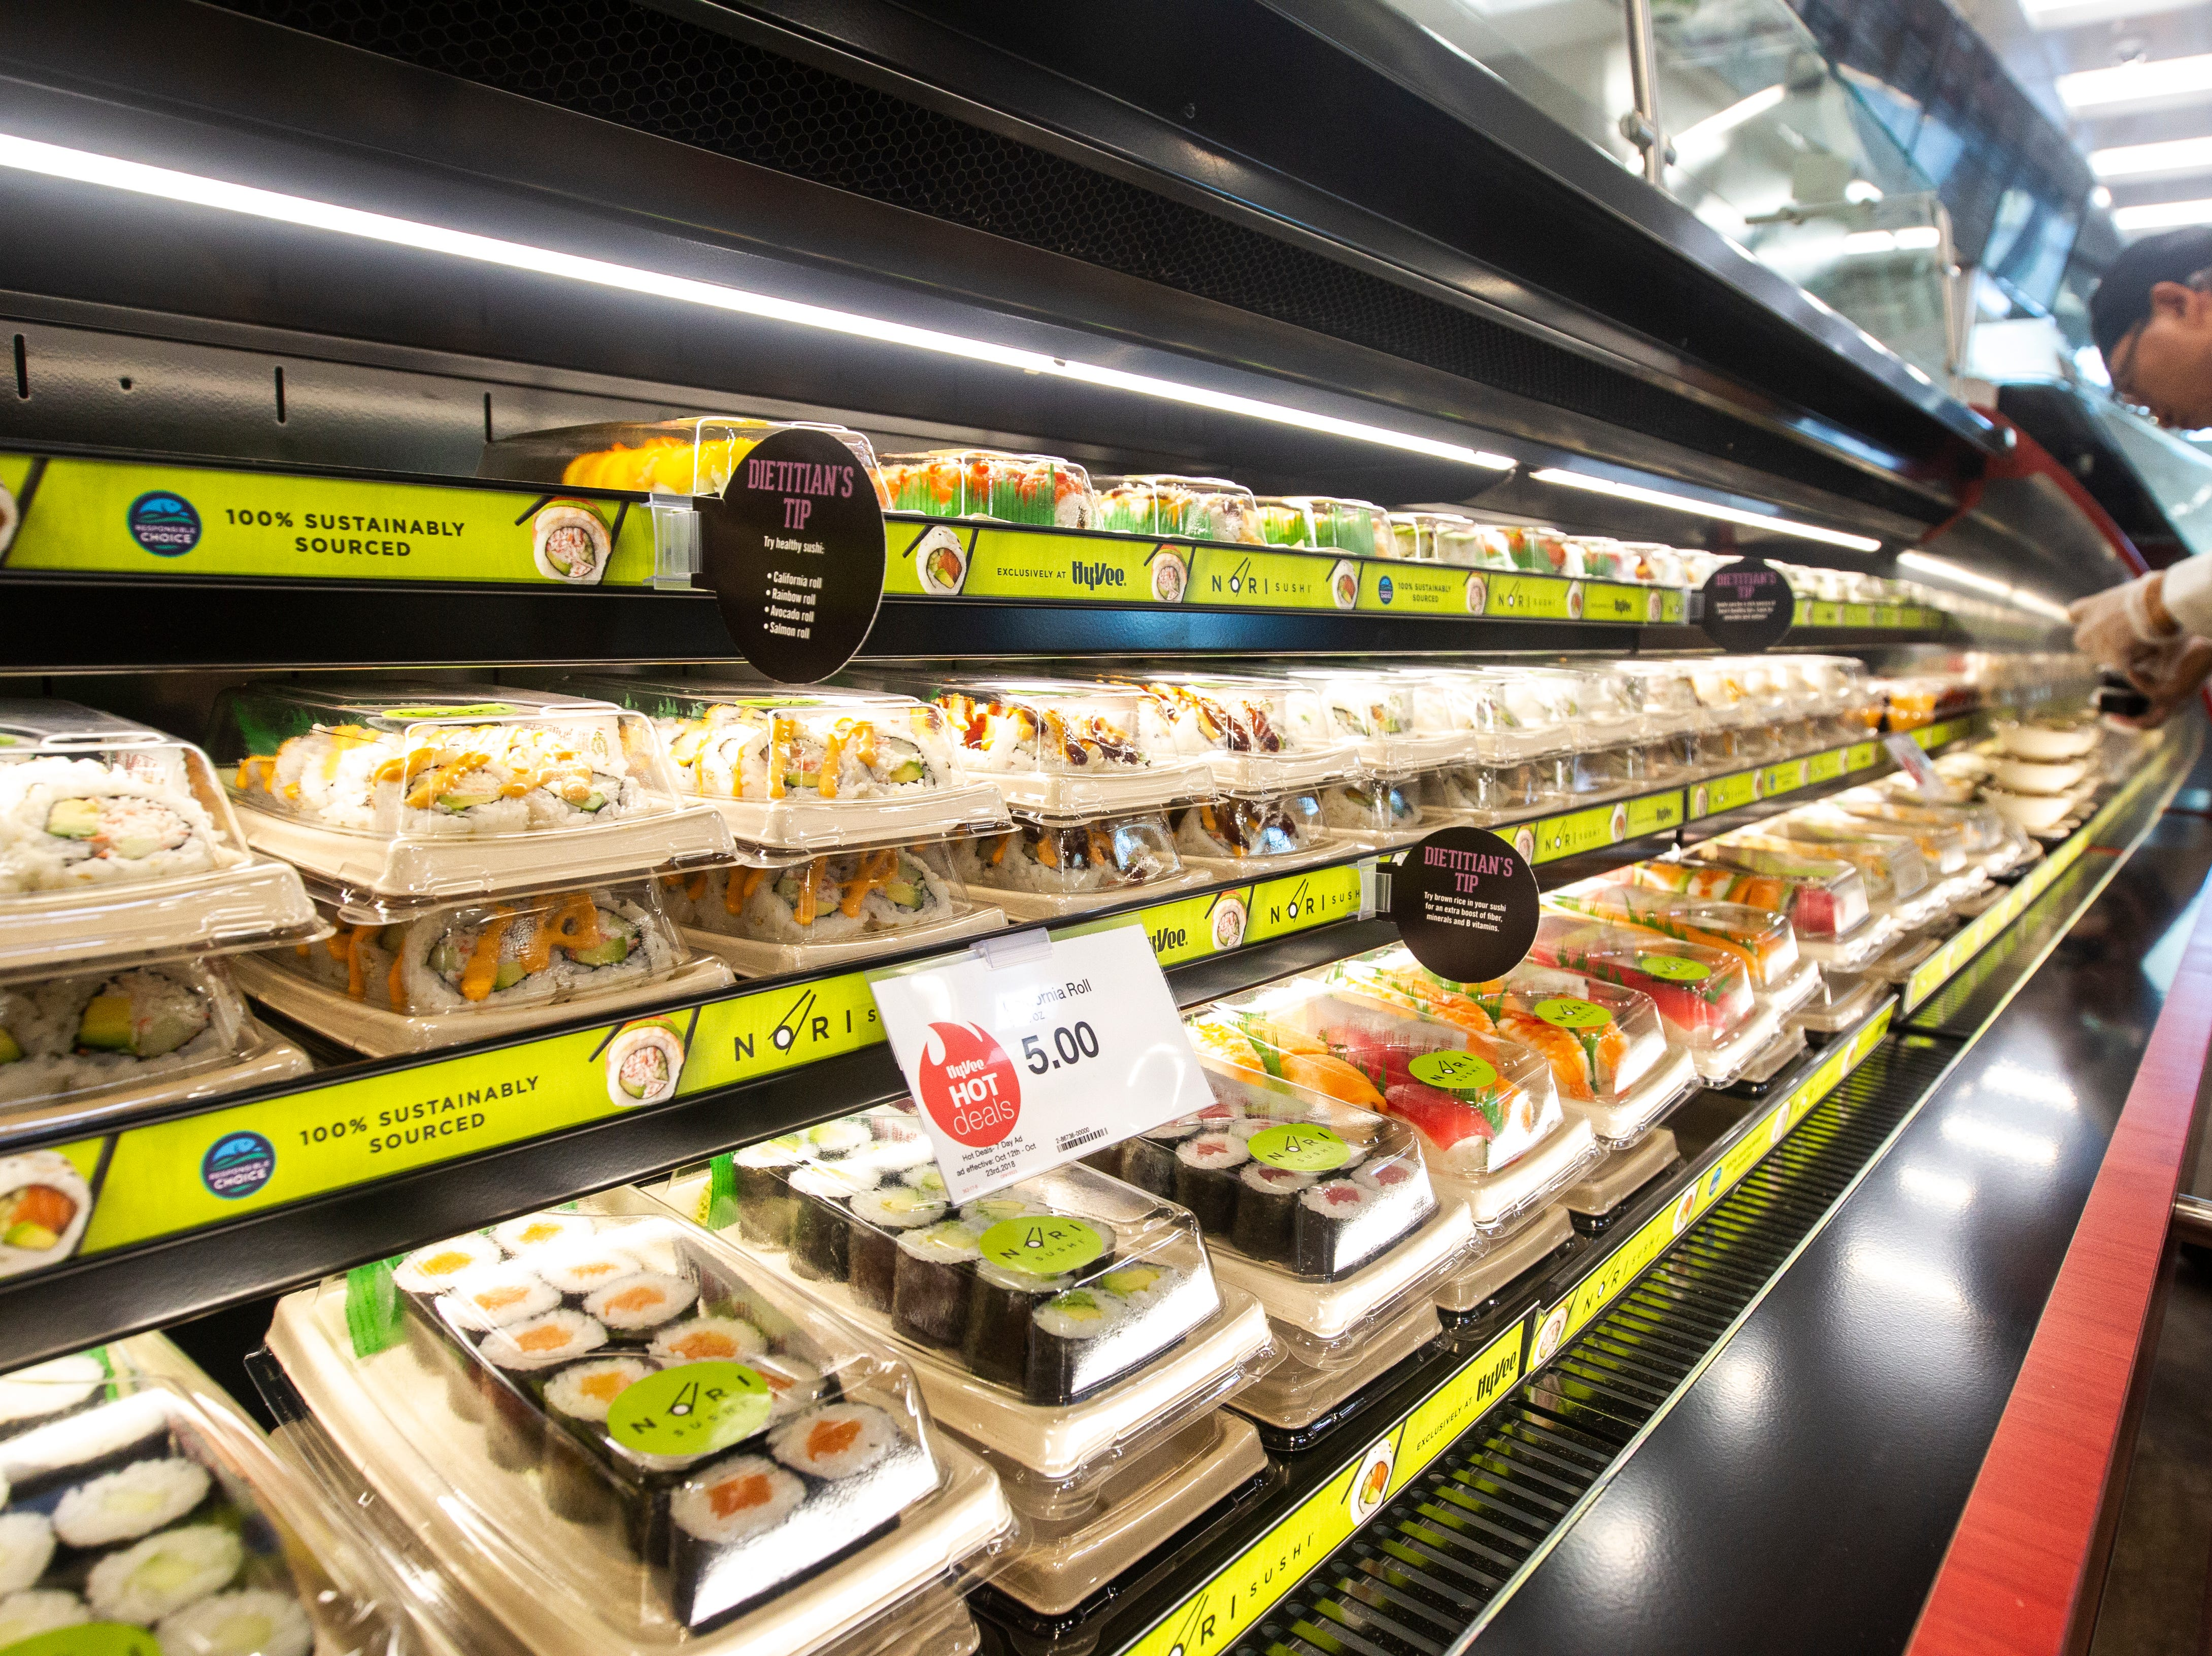 A chilled display case gets stocked with asian food at a new Hy-Vee on Monday, Oct. 15, 2018, along Crosspark Road in Coralville, Iowa.